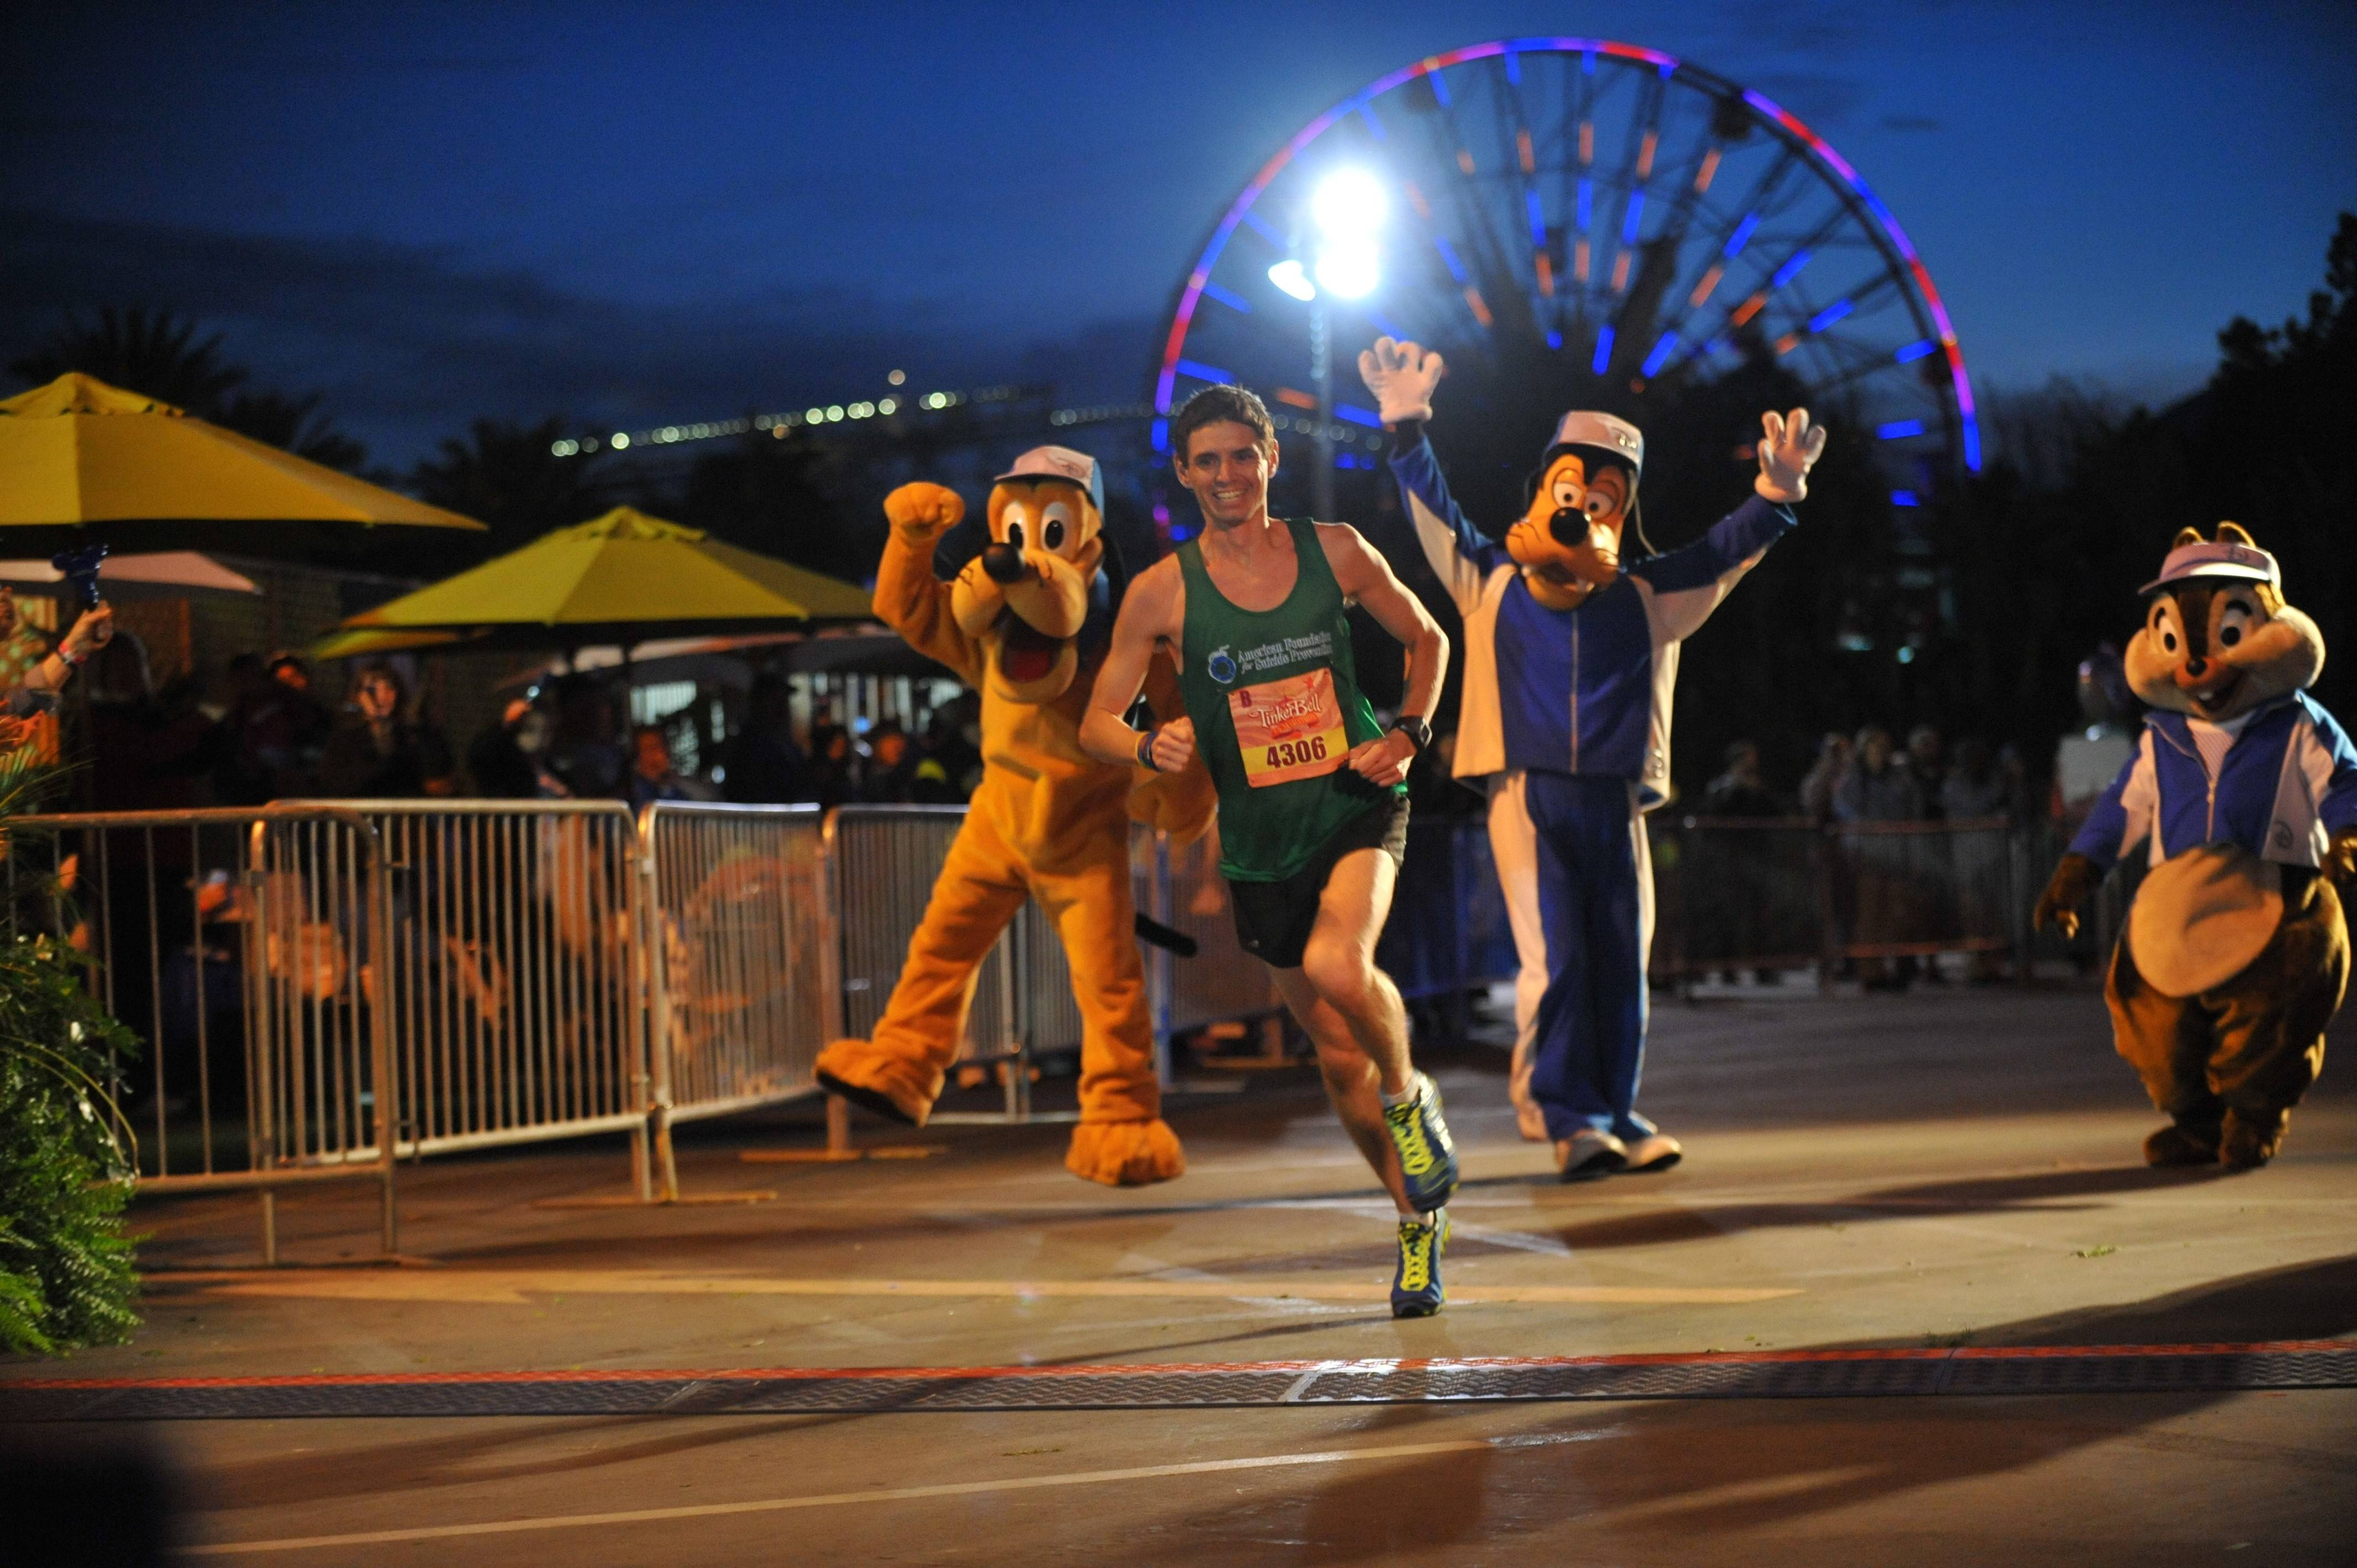 Andrew O'Bannon of Lake Forest, Calif., was the male winner of the third annual Tinkerbell Half Marathon at Disneyland Resort on Jan. 19 in Anaheim, Calif.